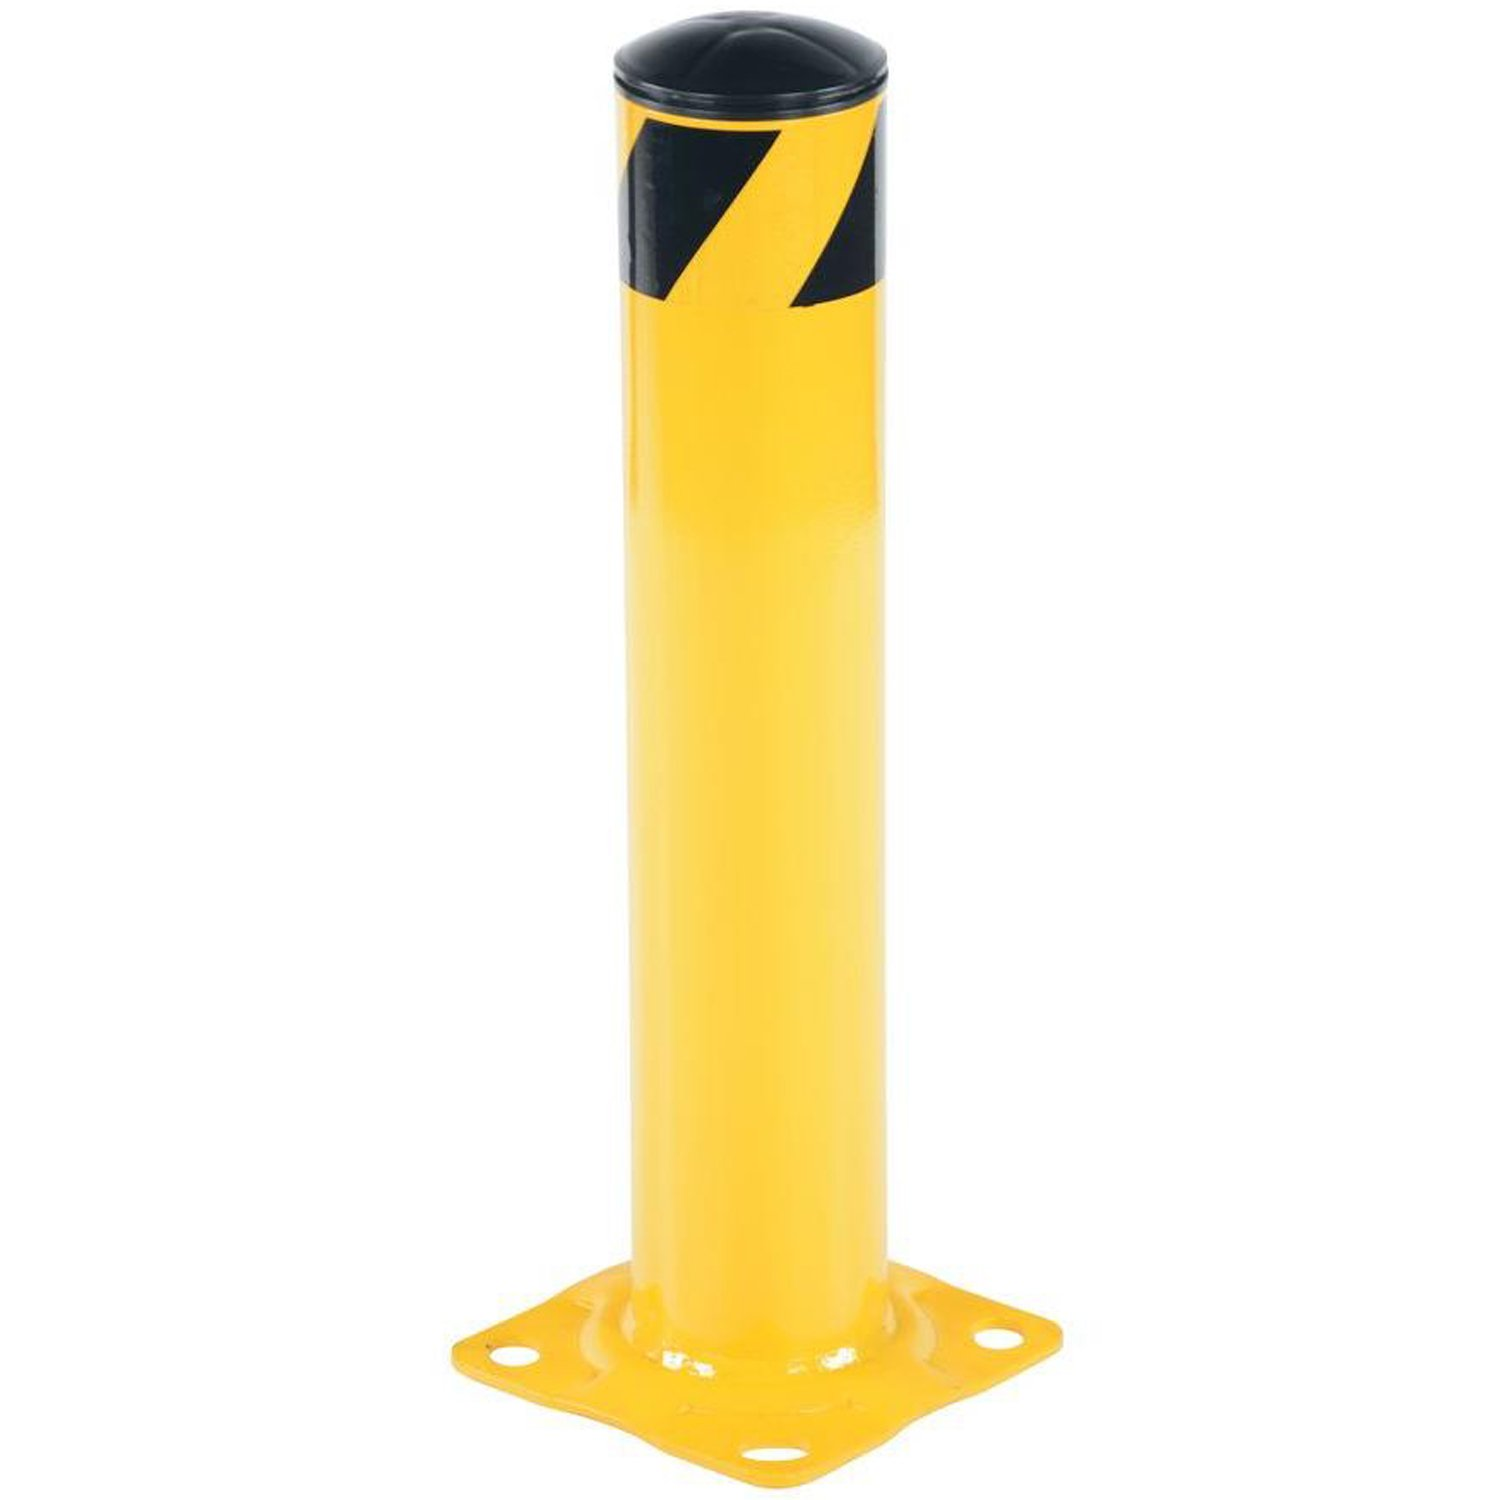 Bollard Post - Steel Safety Barrier Protection- Yellow Powder Coat 4.5'' Diameter 24'' Tall BW4524